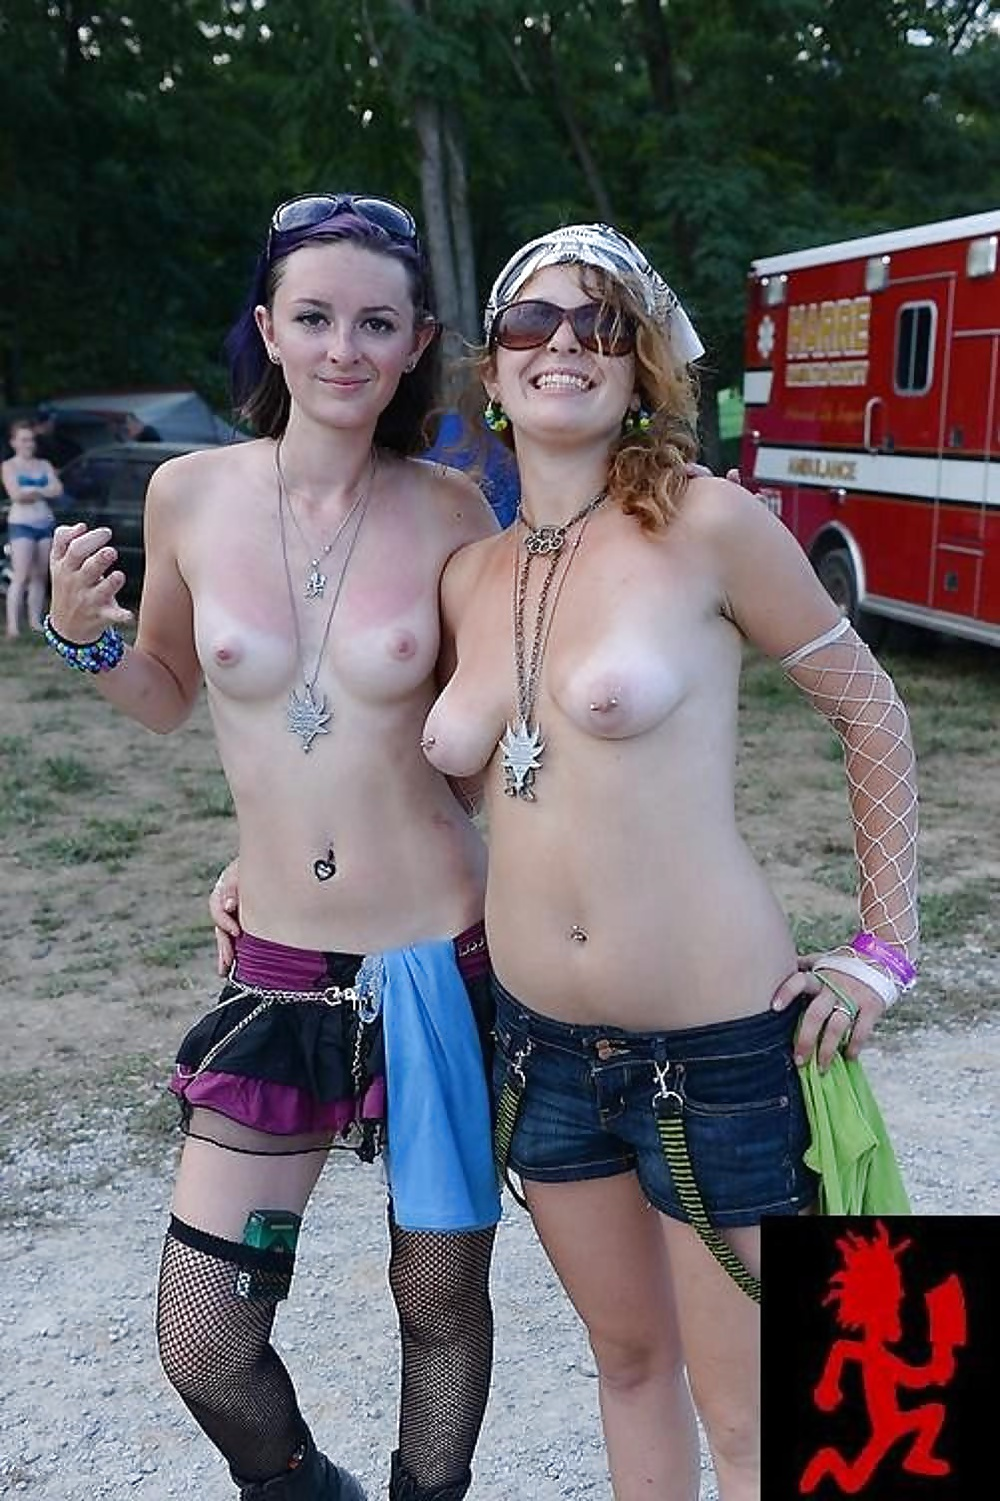 Naked juggalettes